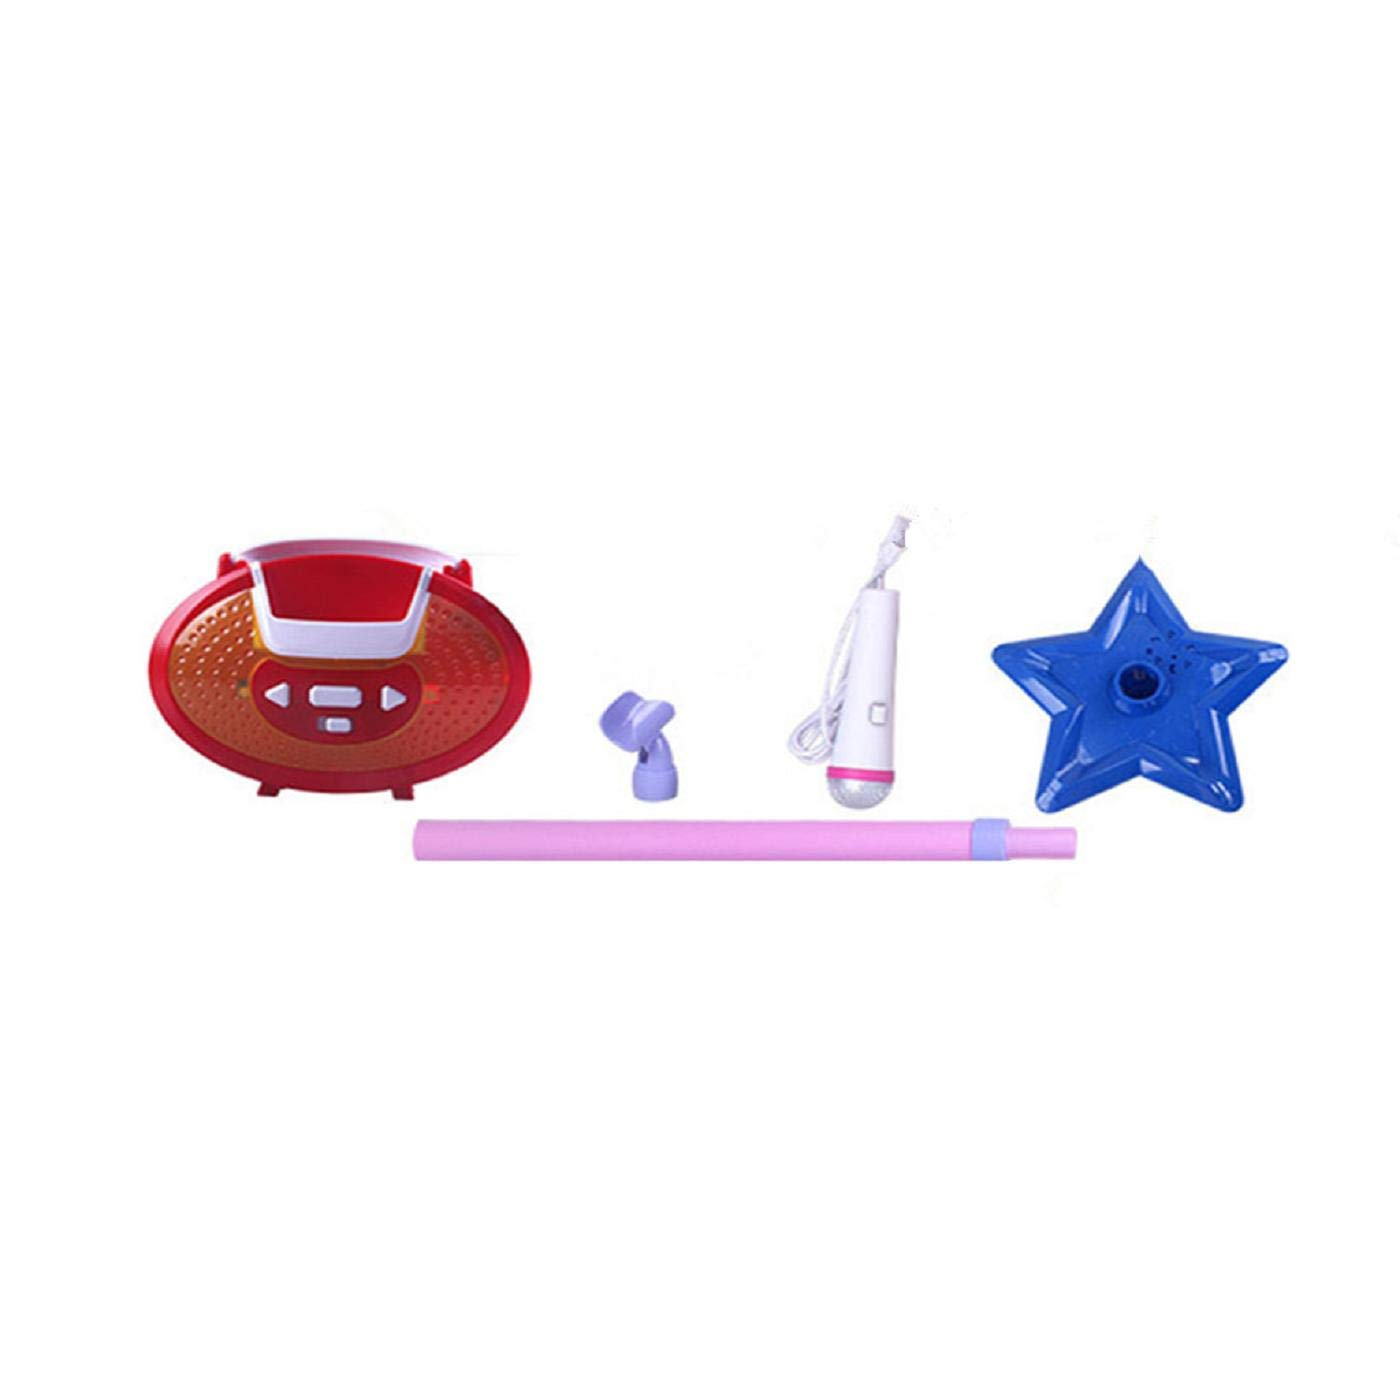 Putars Kids Girls Mp3 KaraokeMicrophone Adjustable Stand Light Sound,Music Sing Along with Flashing Stage Lights and Pedals for Fun,Microphone and Mic Stand - Online Exclusive by Putars toy (Image #3)